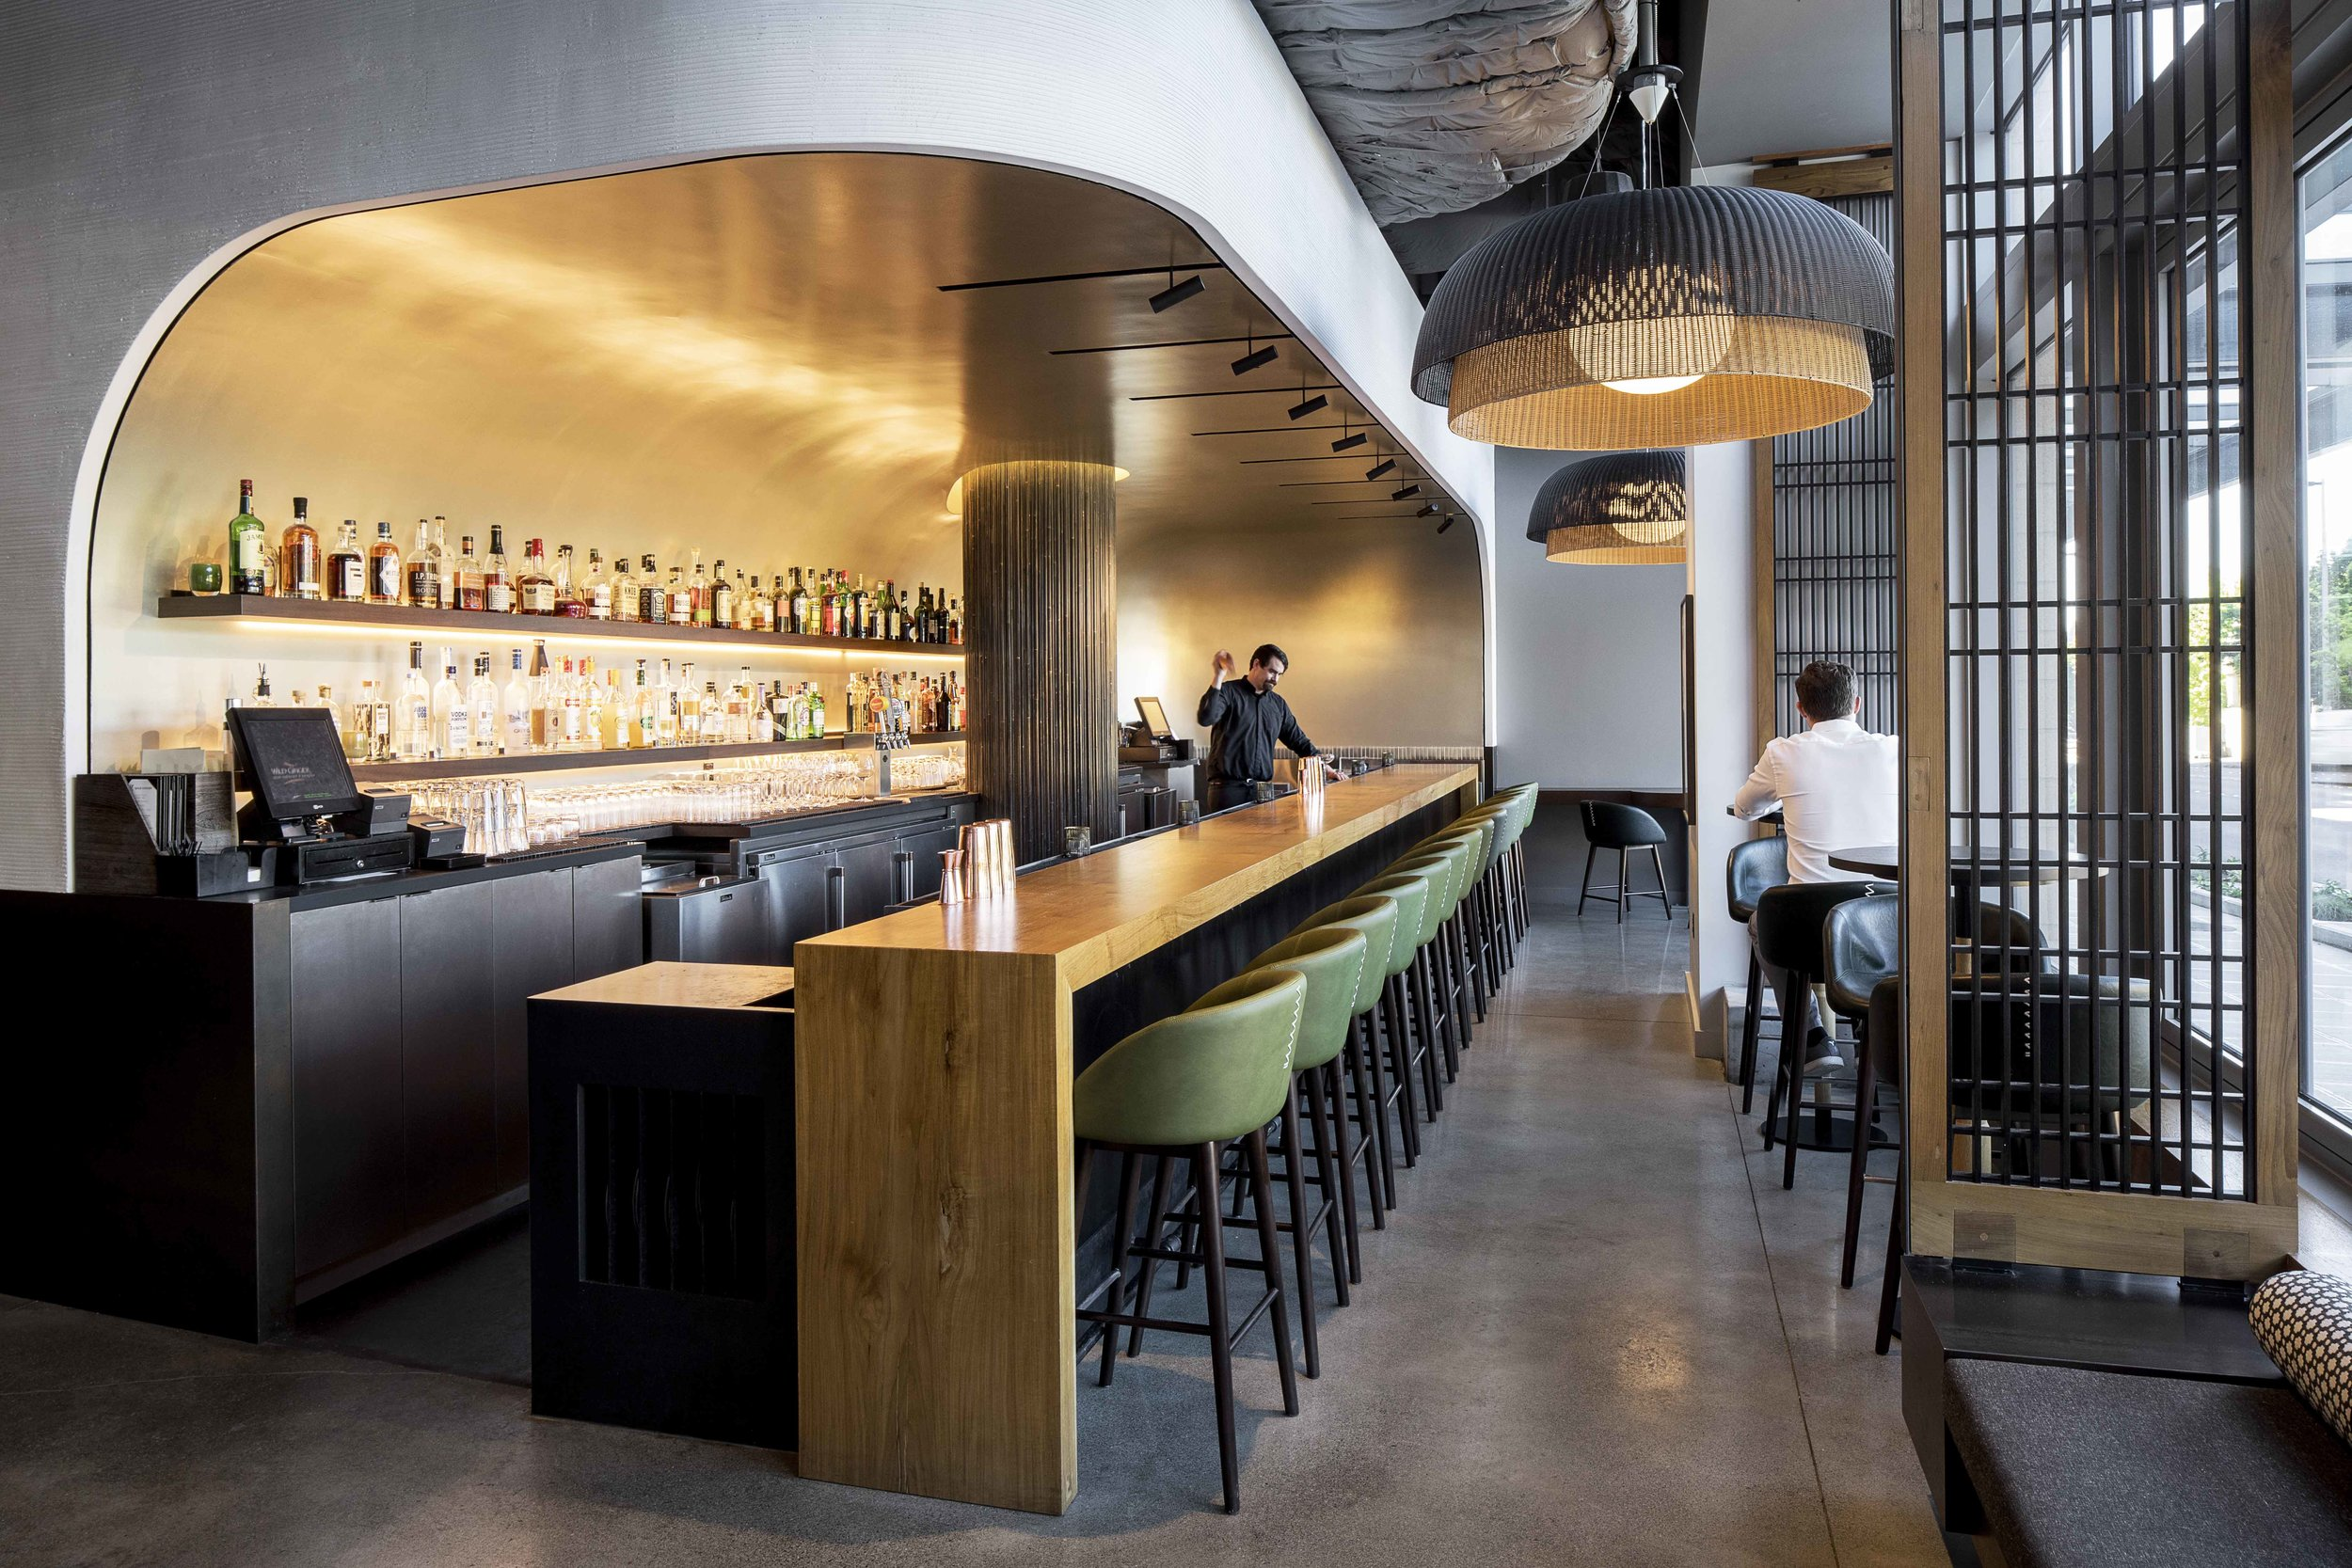 bar stools  - WILD GINGER bellevue